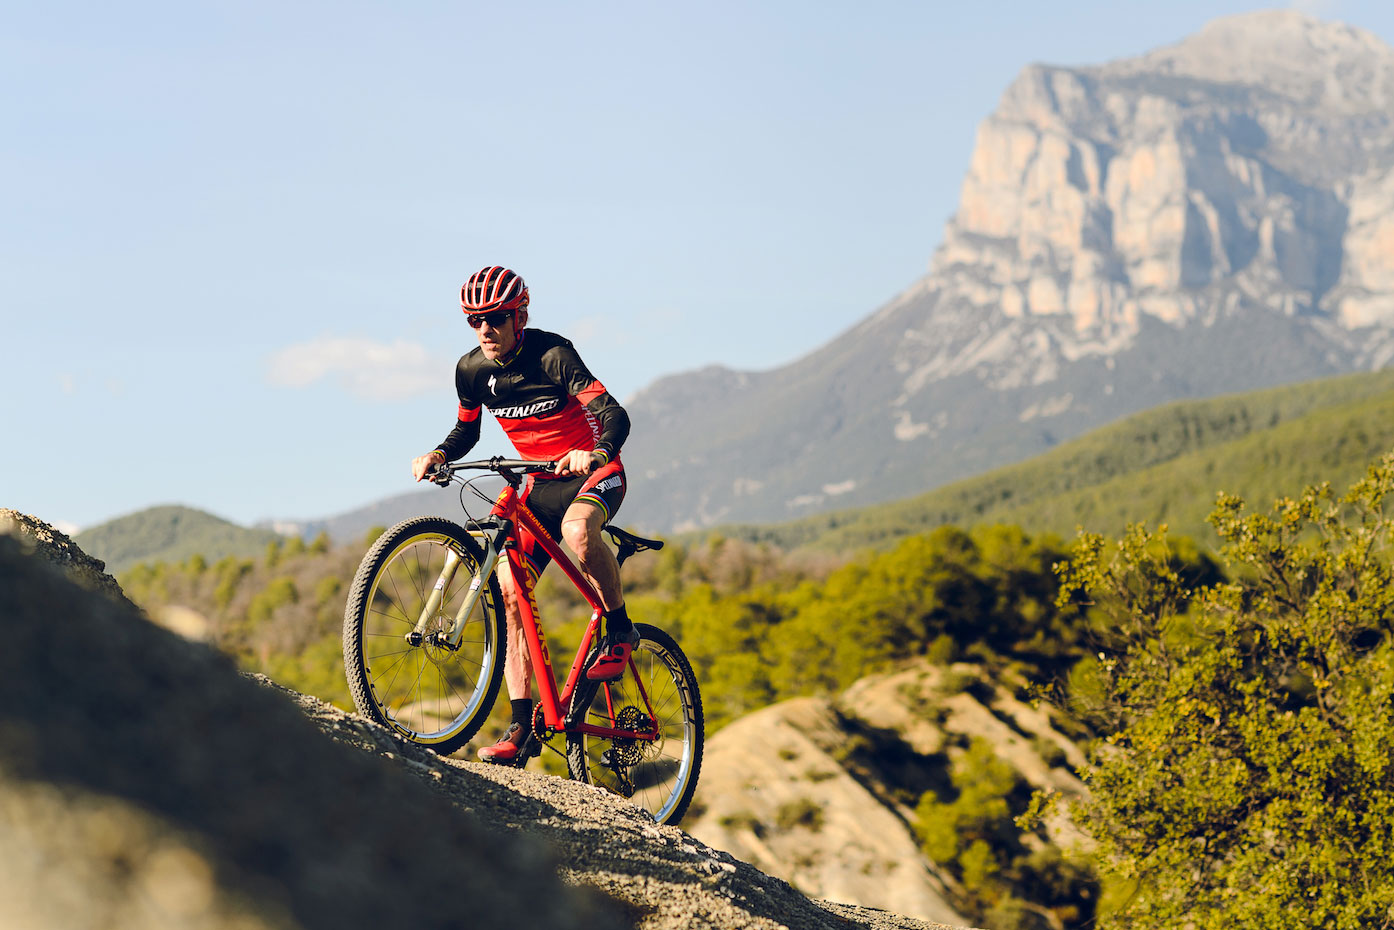 Ned Overend crushes hills on 2x setup